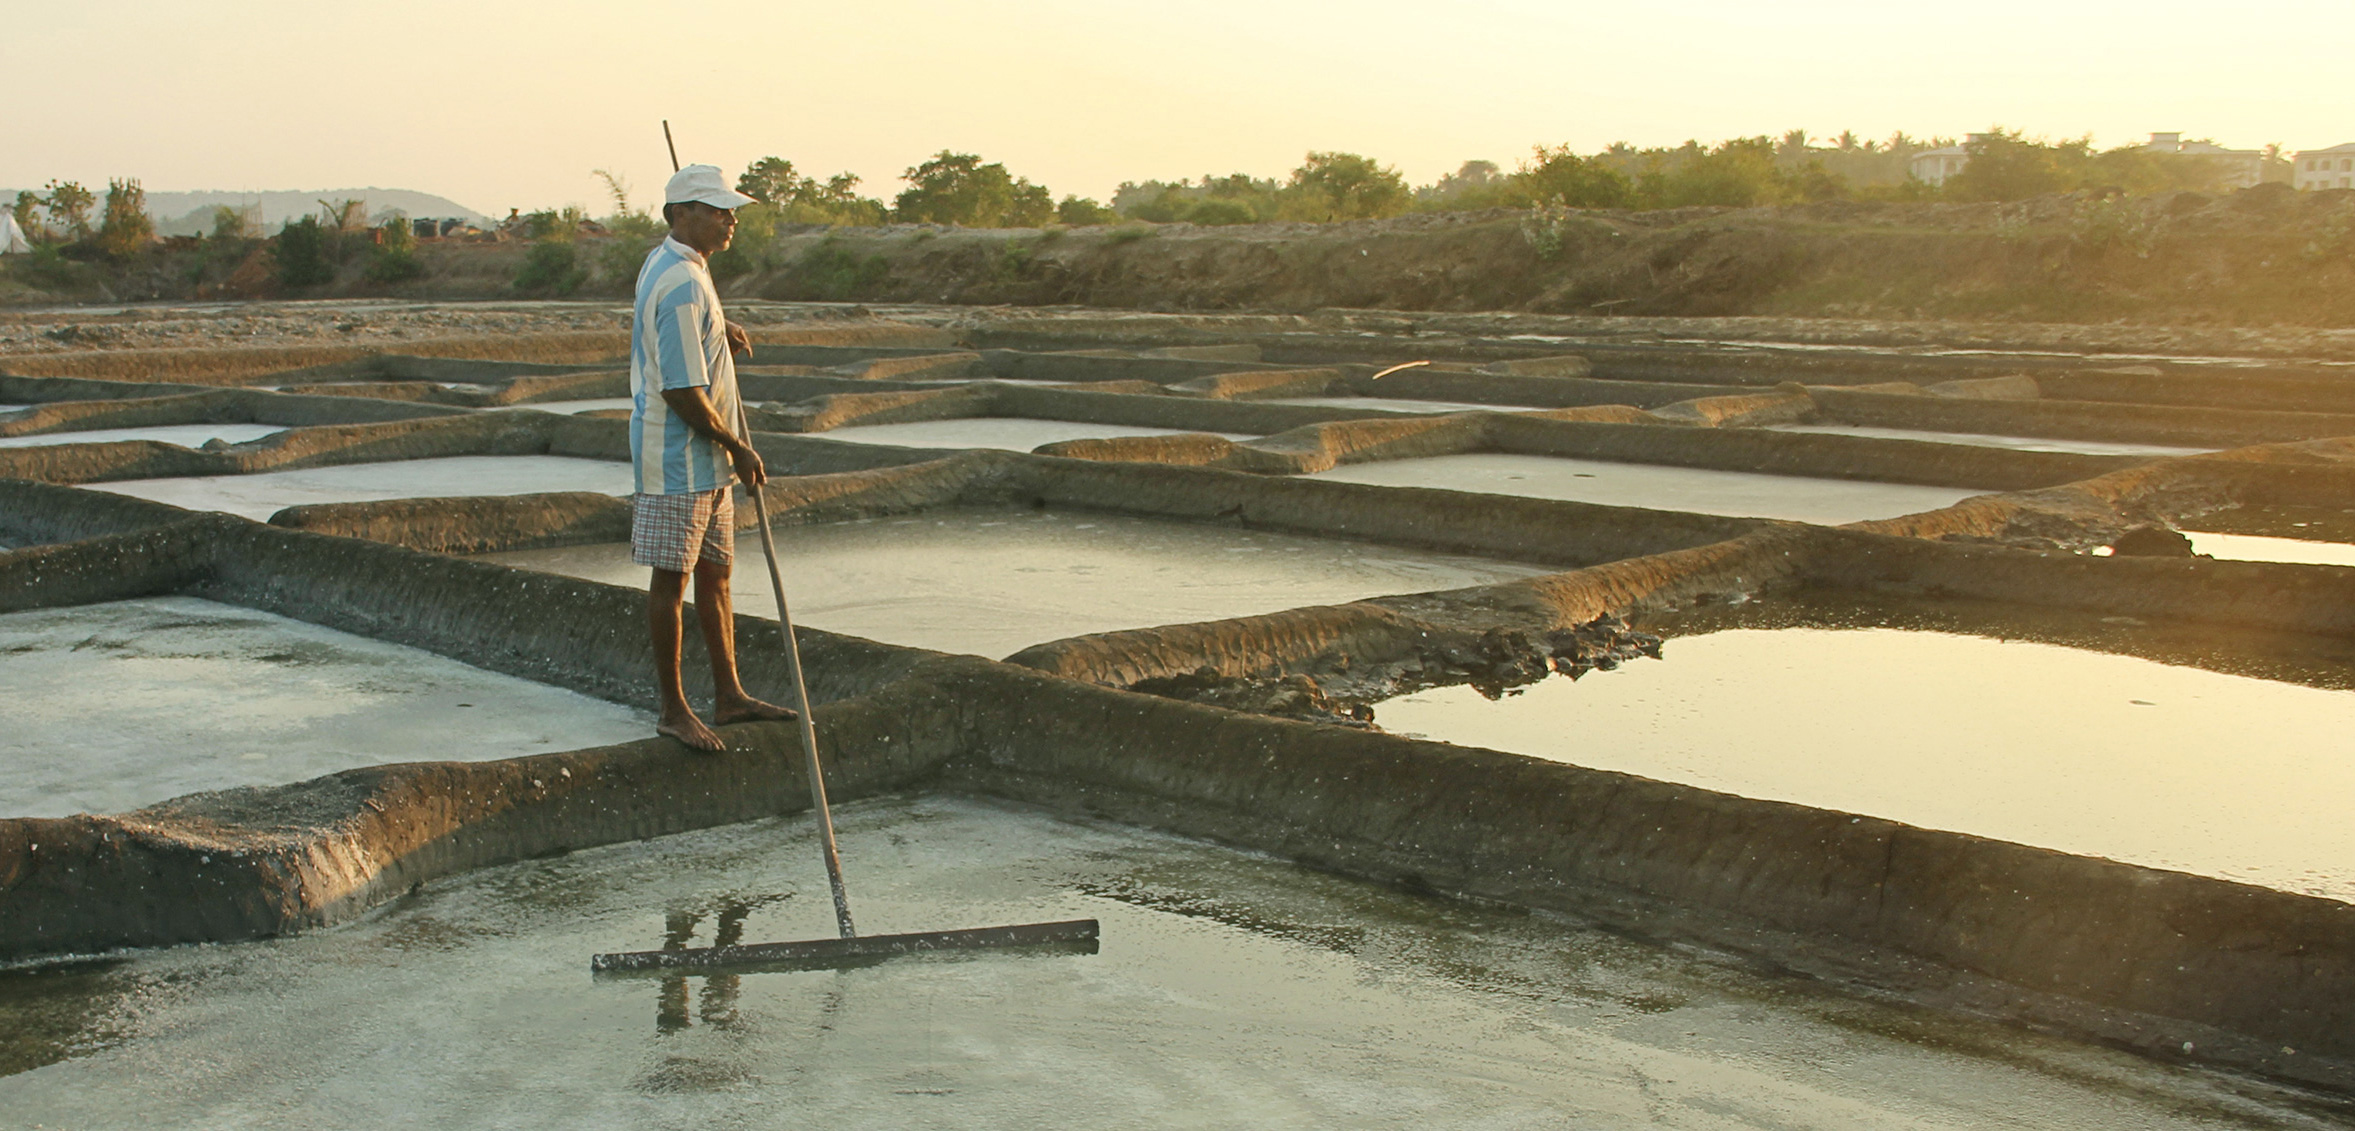 Pravin Bagli, one of the few remaining traditional salt makers in Goa, India, works on his salt pan near the Chapora River. Photo by Glenda D'Souza